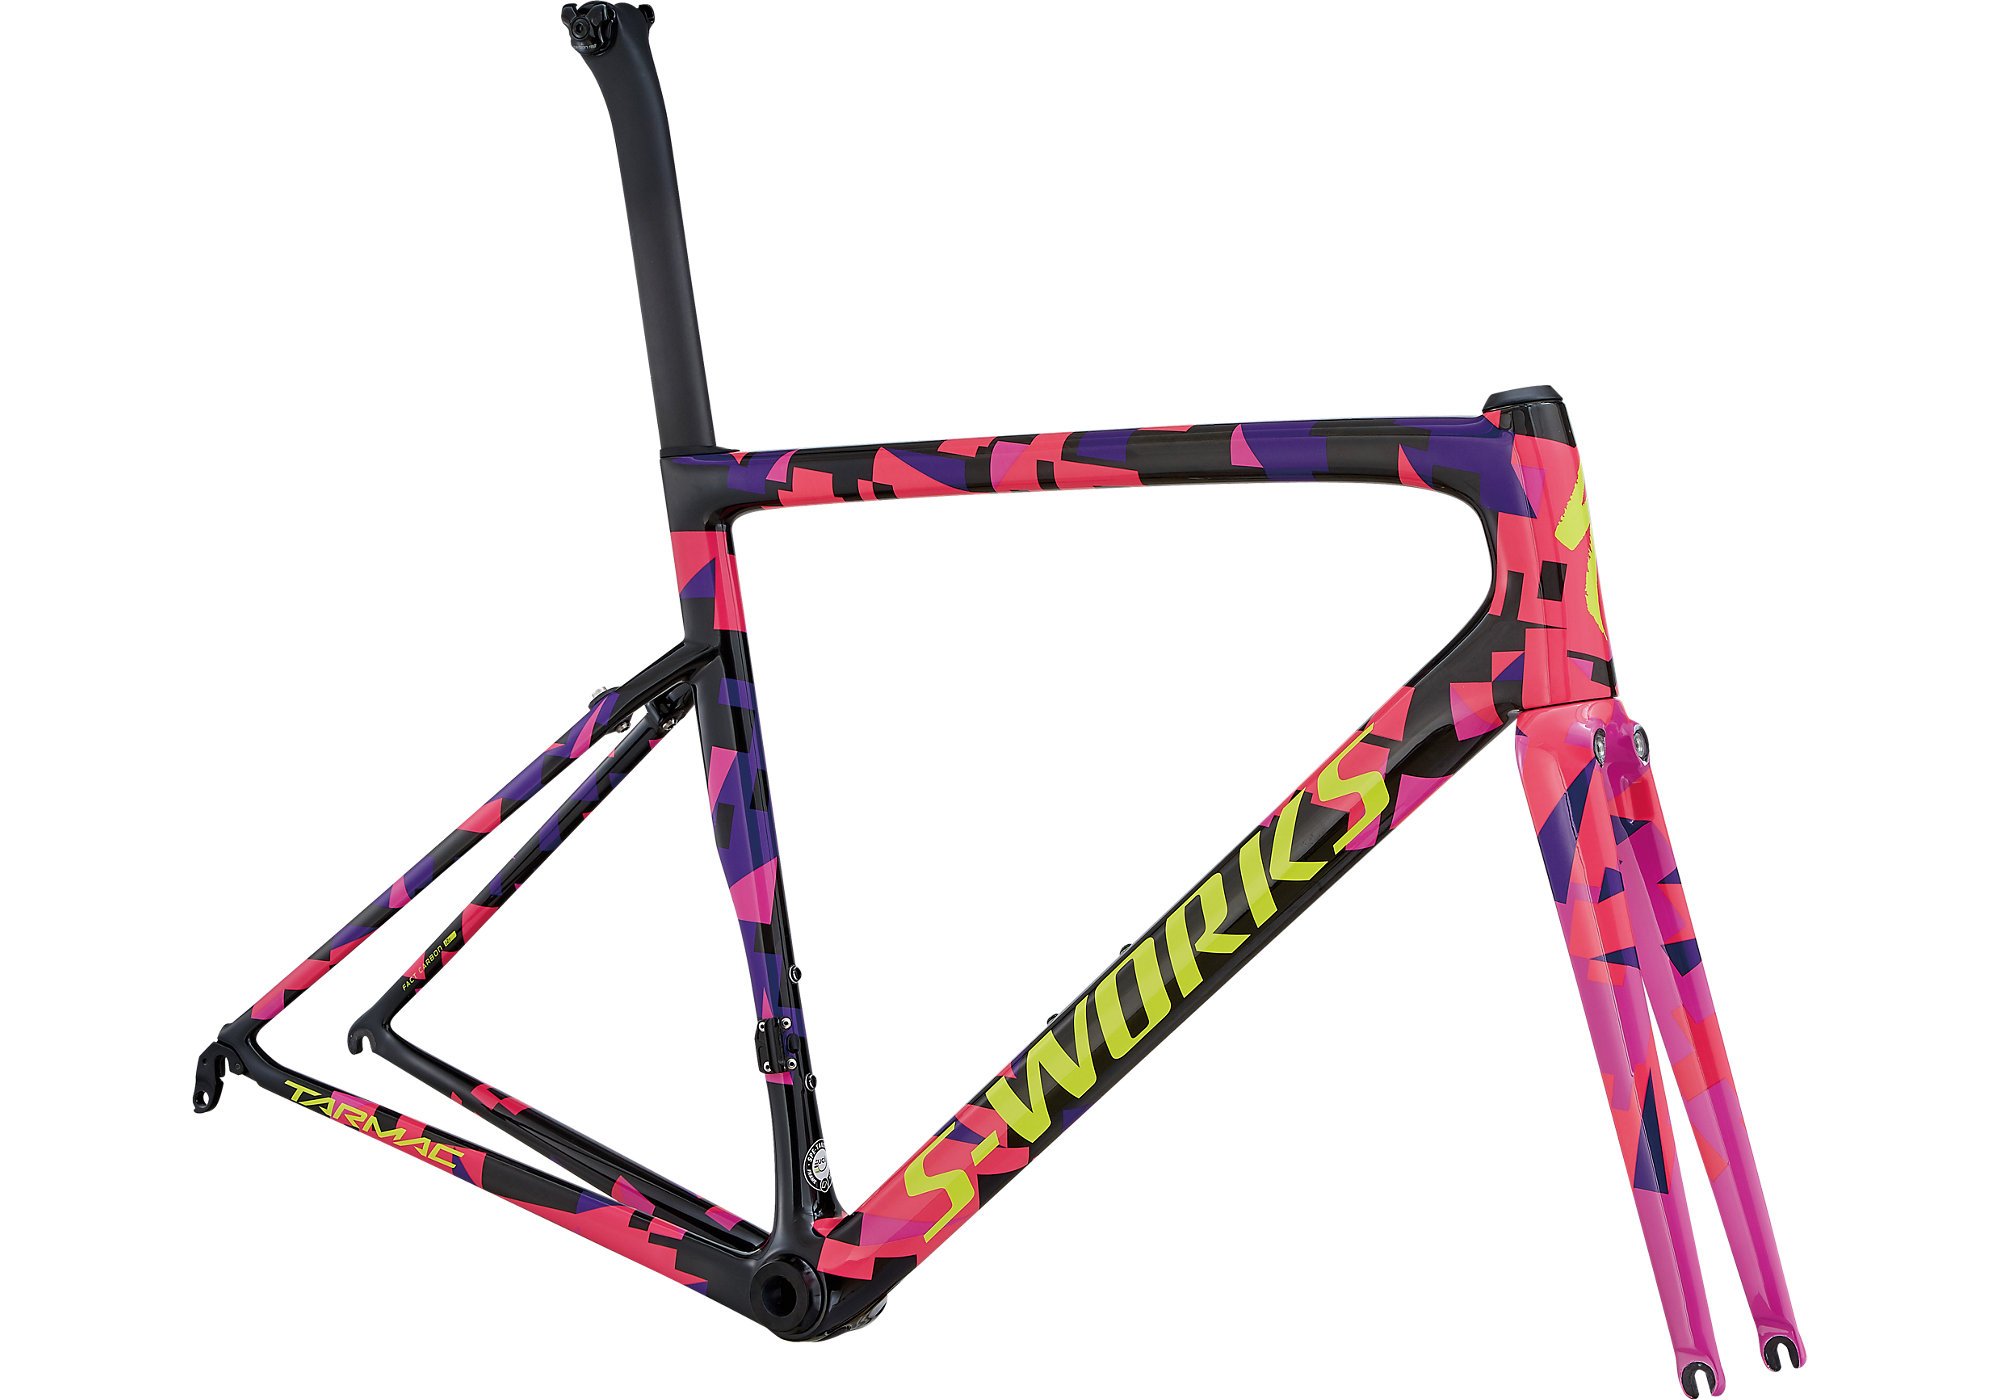 b1bc279ac20 2018 Specialized S-Works Tarmac FrameseT - Specialized Concept Store